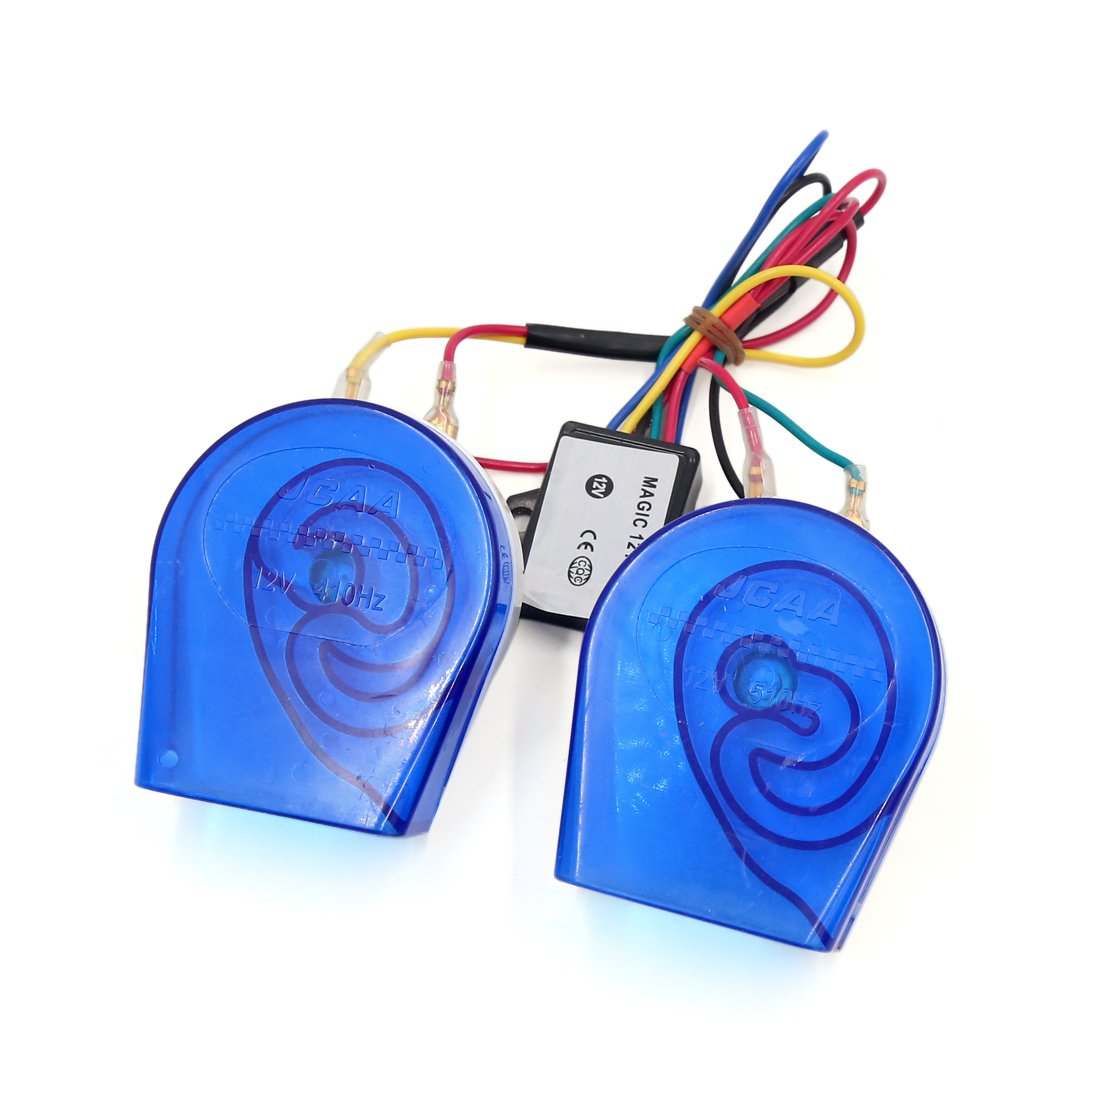 uxcell 2pcs Blue Plastic Shell 12V High Low Sound Electric Snail Horn for Car Truck by uxcell